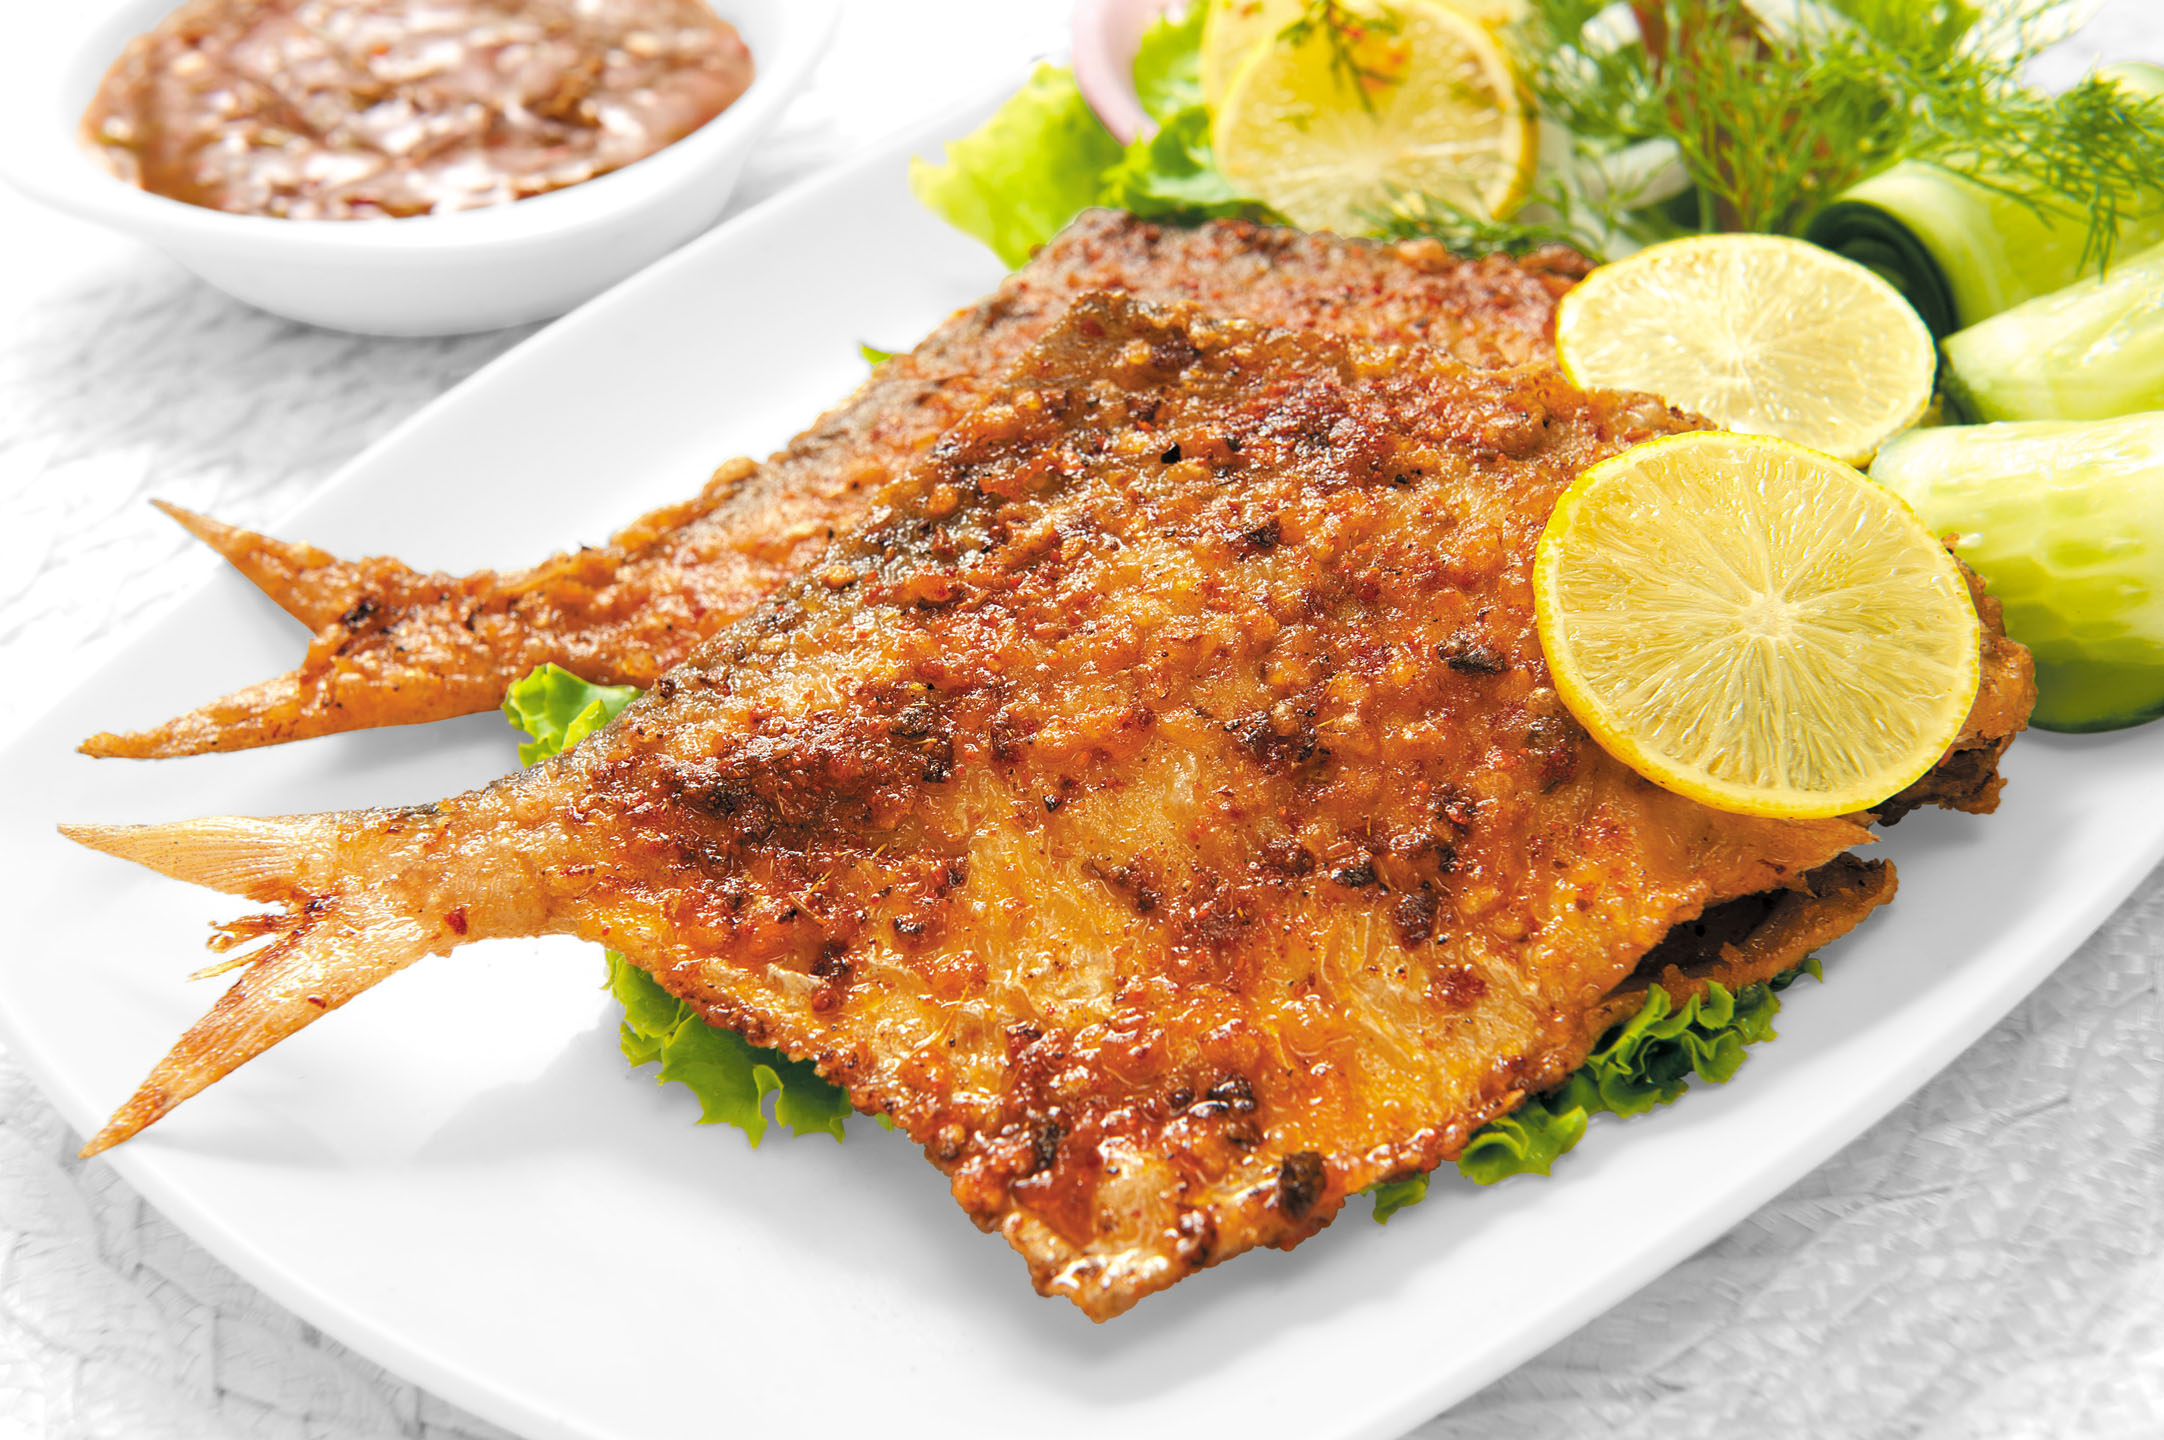 Recipe description for Deep fried whole fish